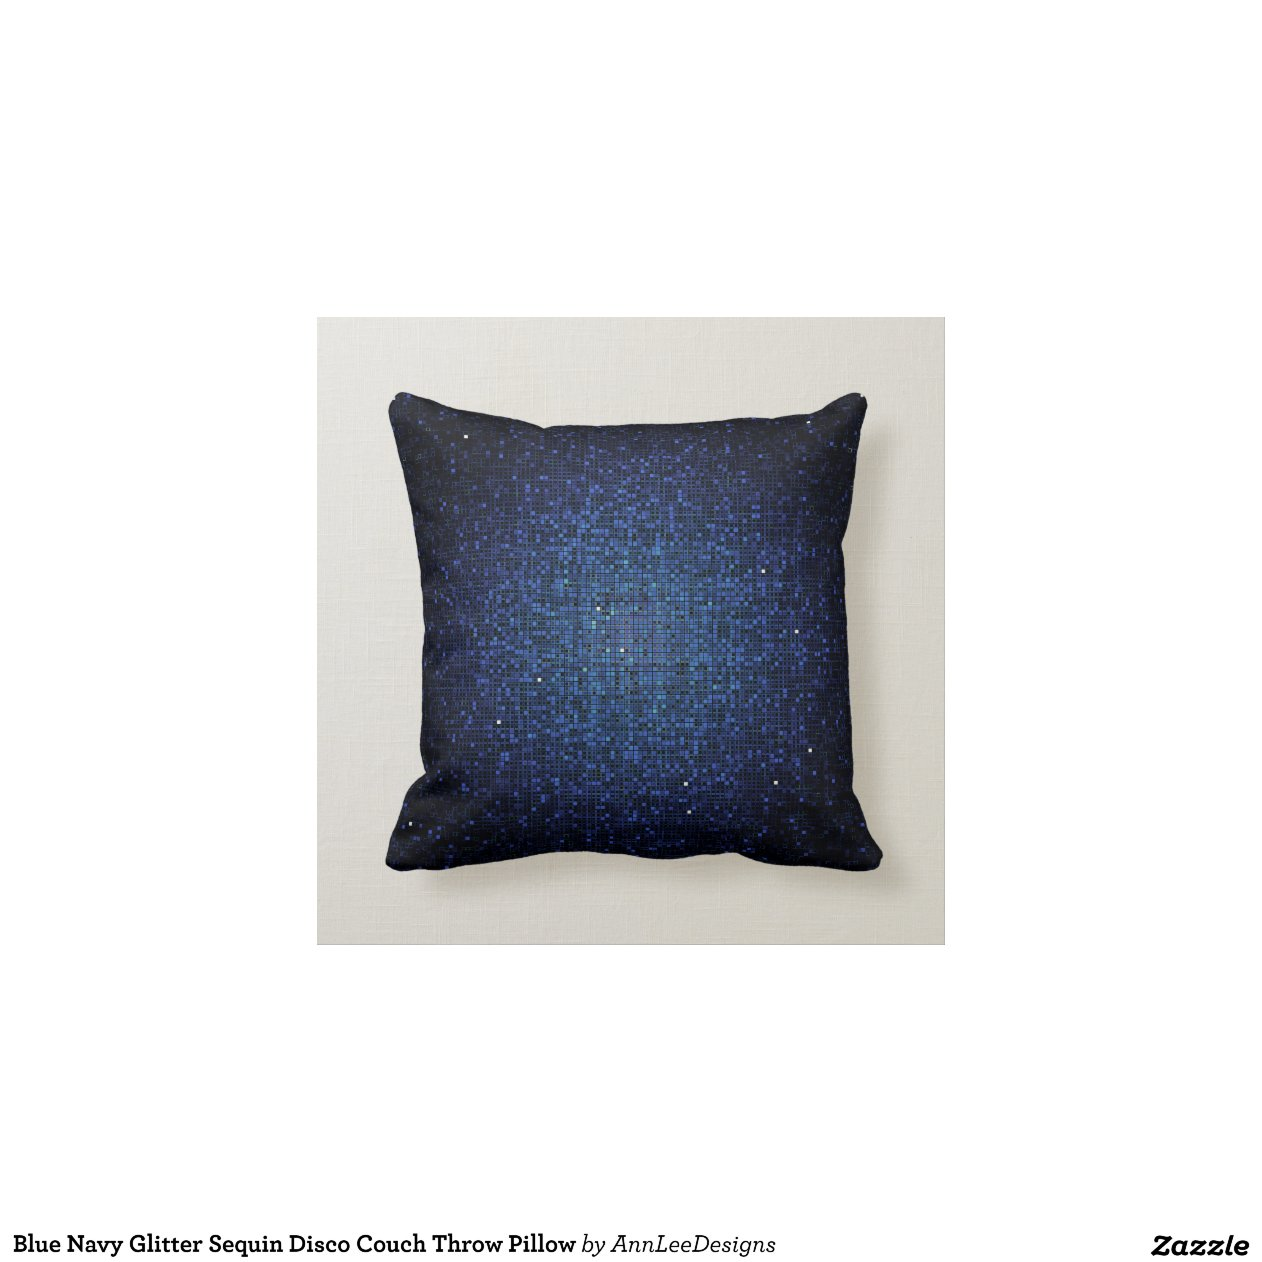 Blue Navy Glitter Sequin Disco Couch Throw Pillow Zazzle